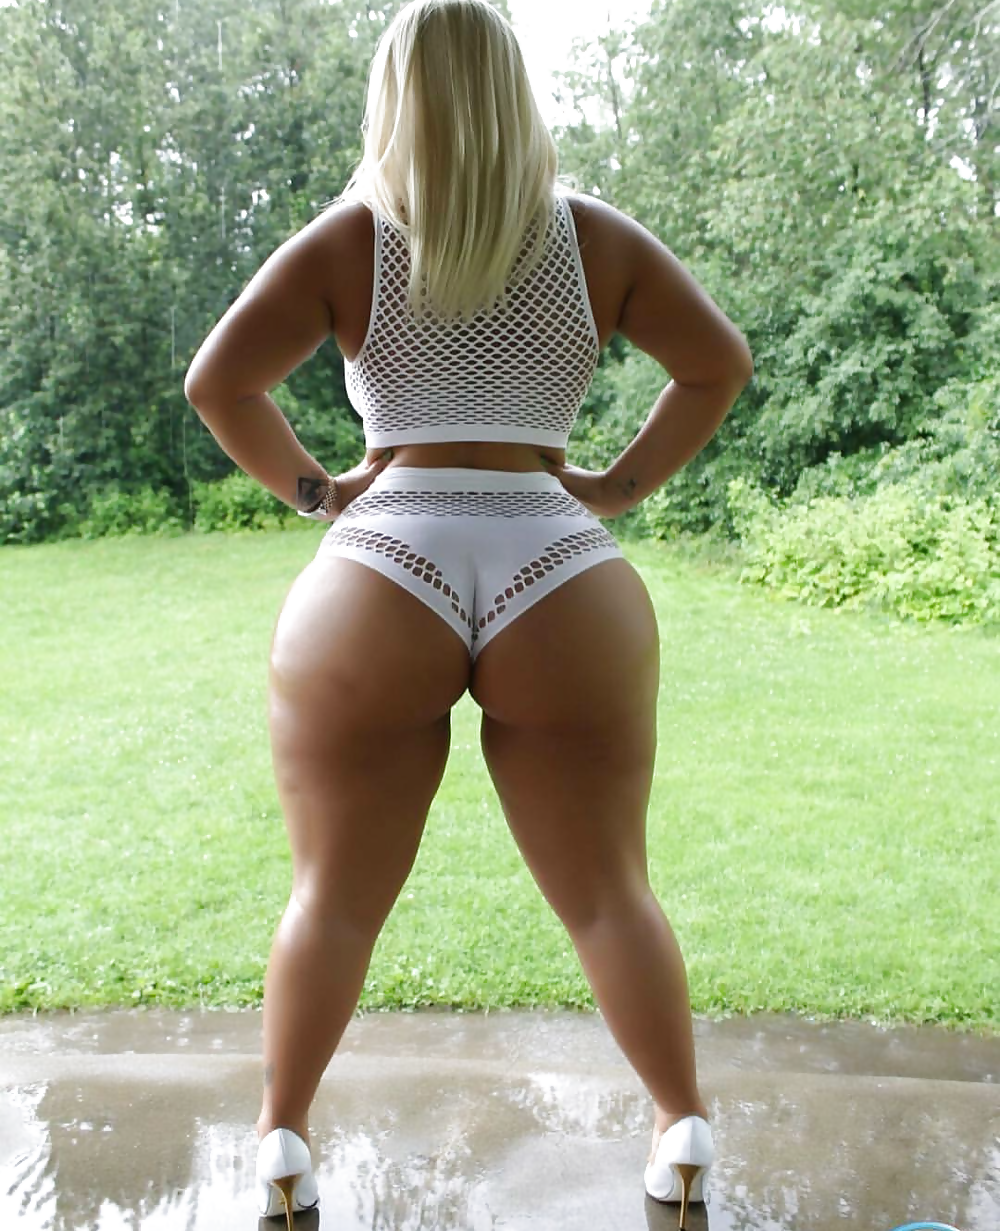 Phat curvy wide hips on tumblr